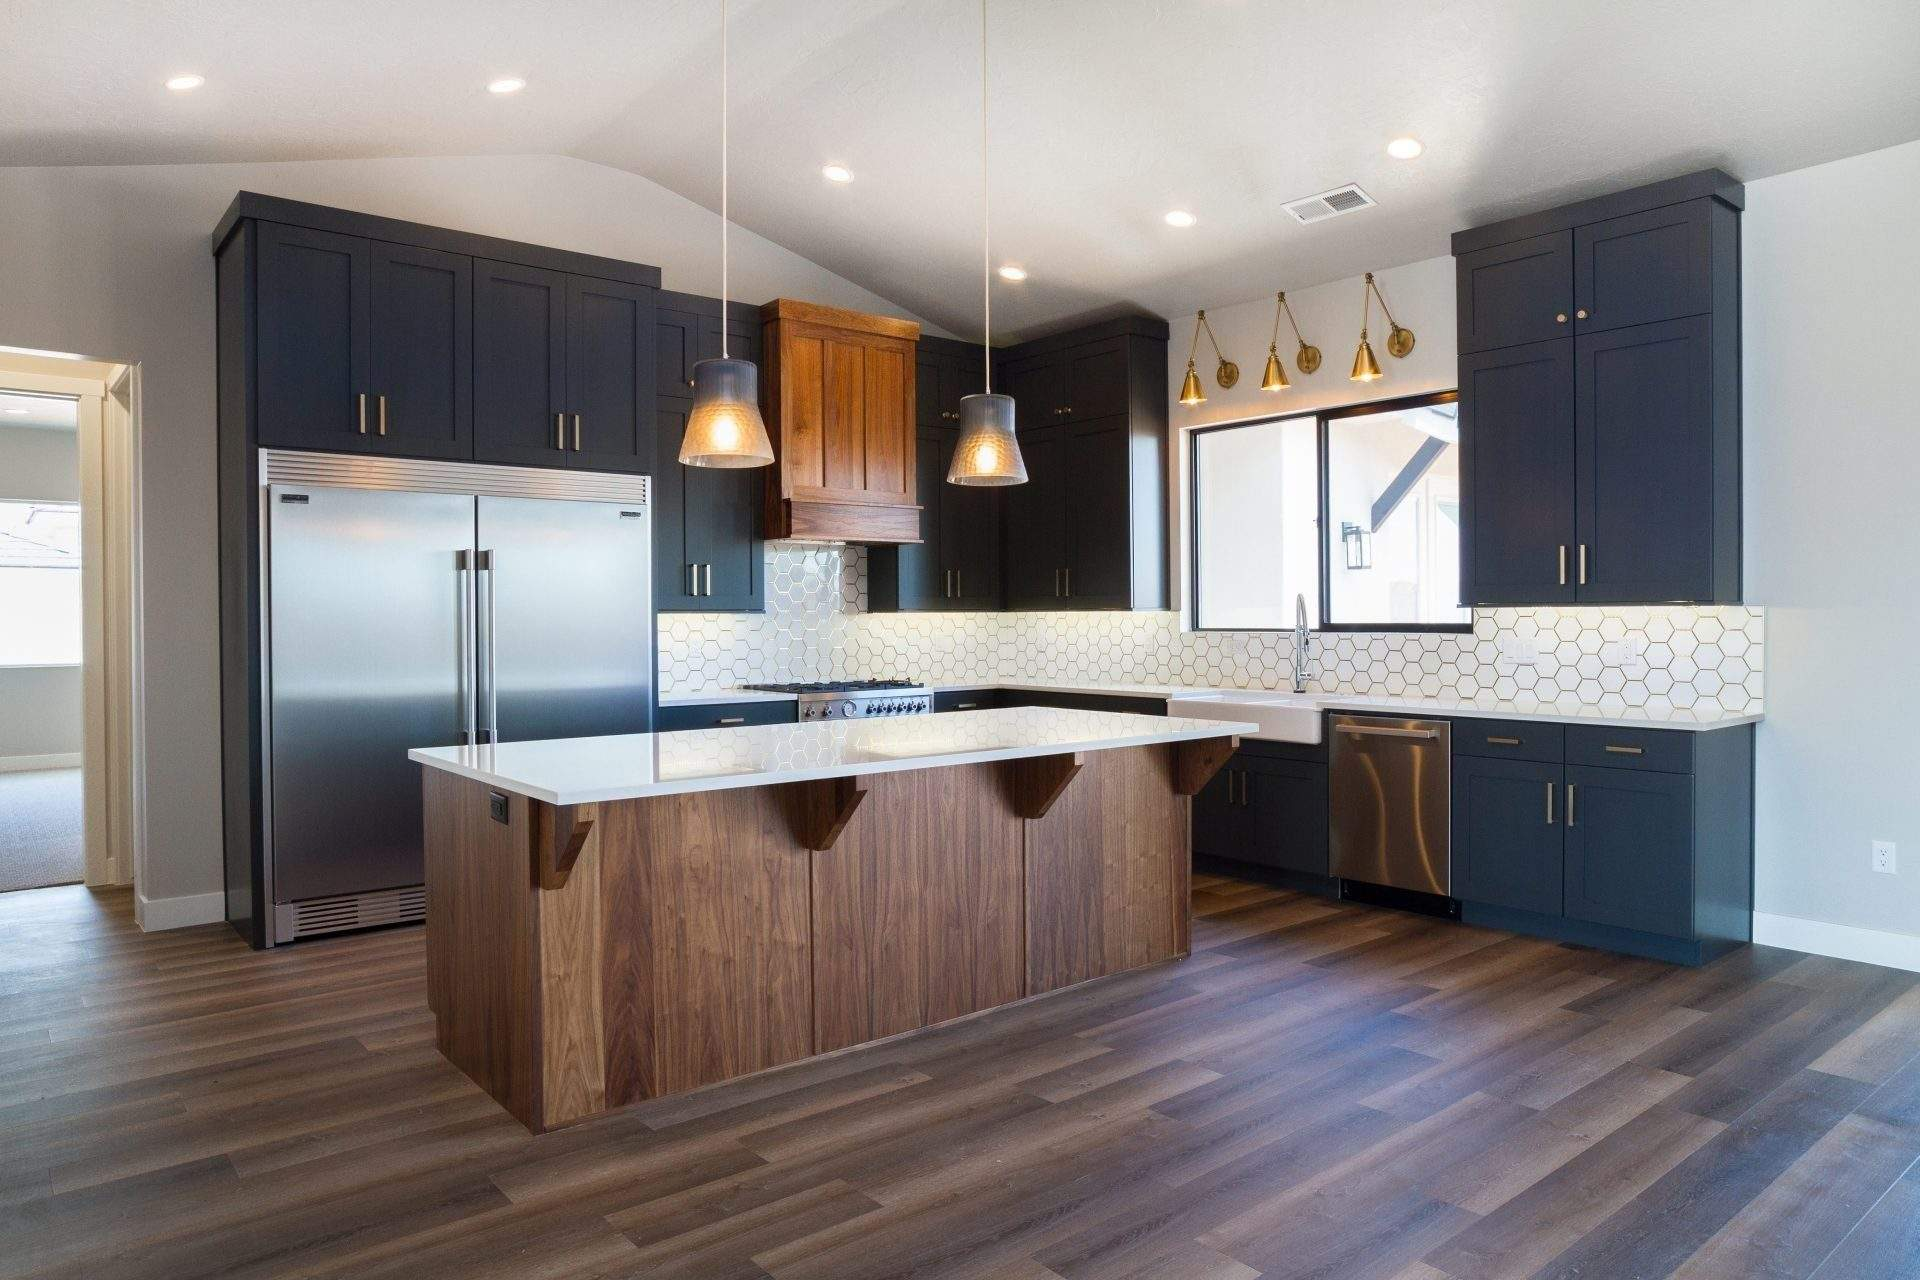 Etch Design Group - custom home with deep gray cabinets and brass accents.